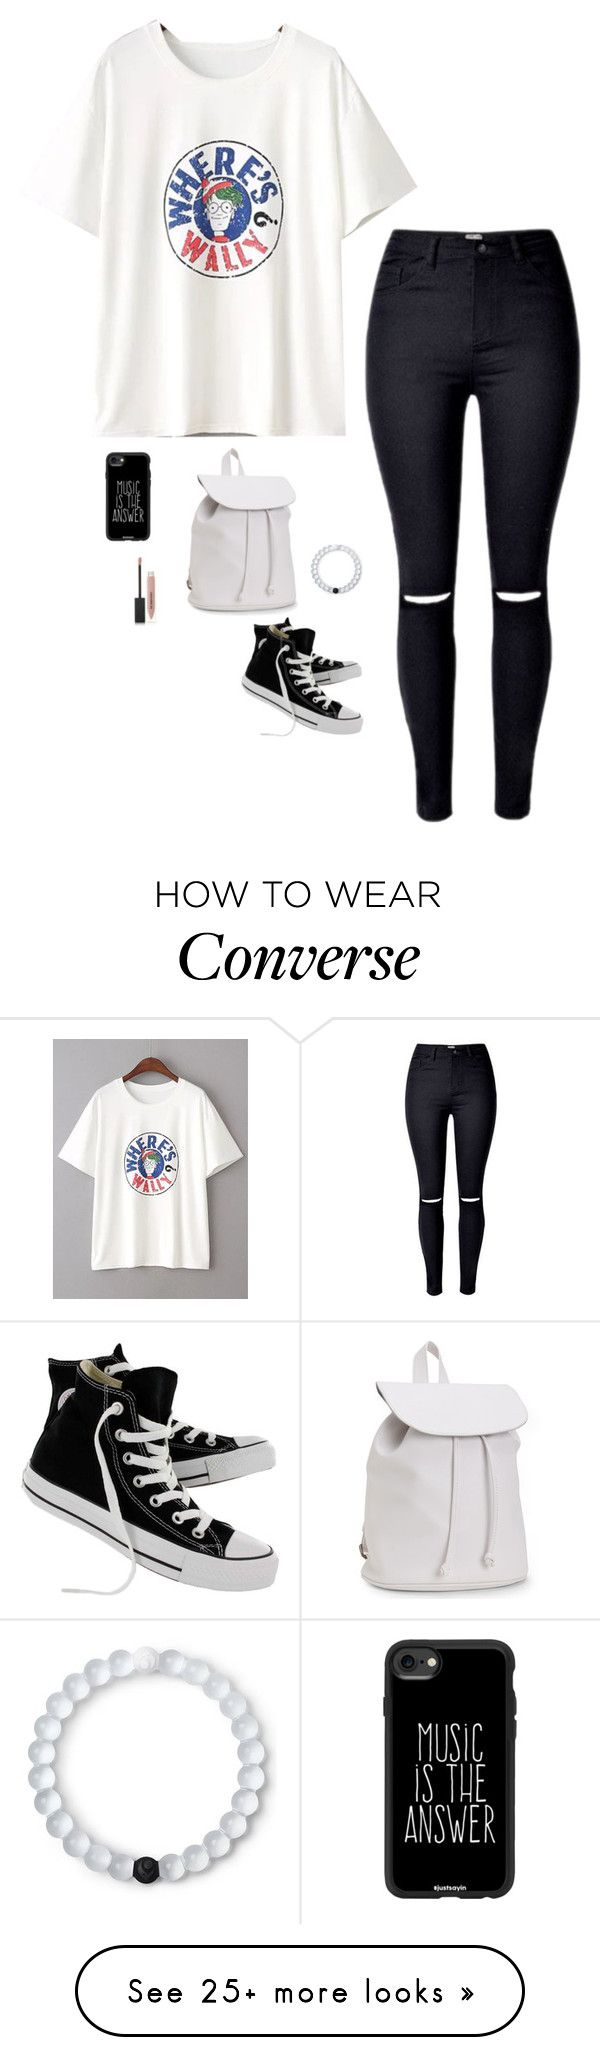 """Untitled #4414"" by if-i-were-famous1 on Polyvore featuring WithChic, Converse, Casetify, Lokai, Burberry and Aéropostale"